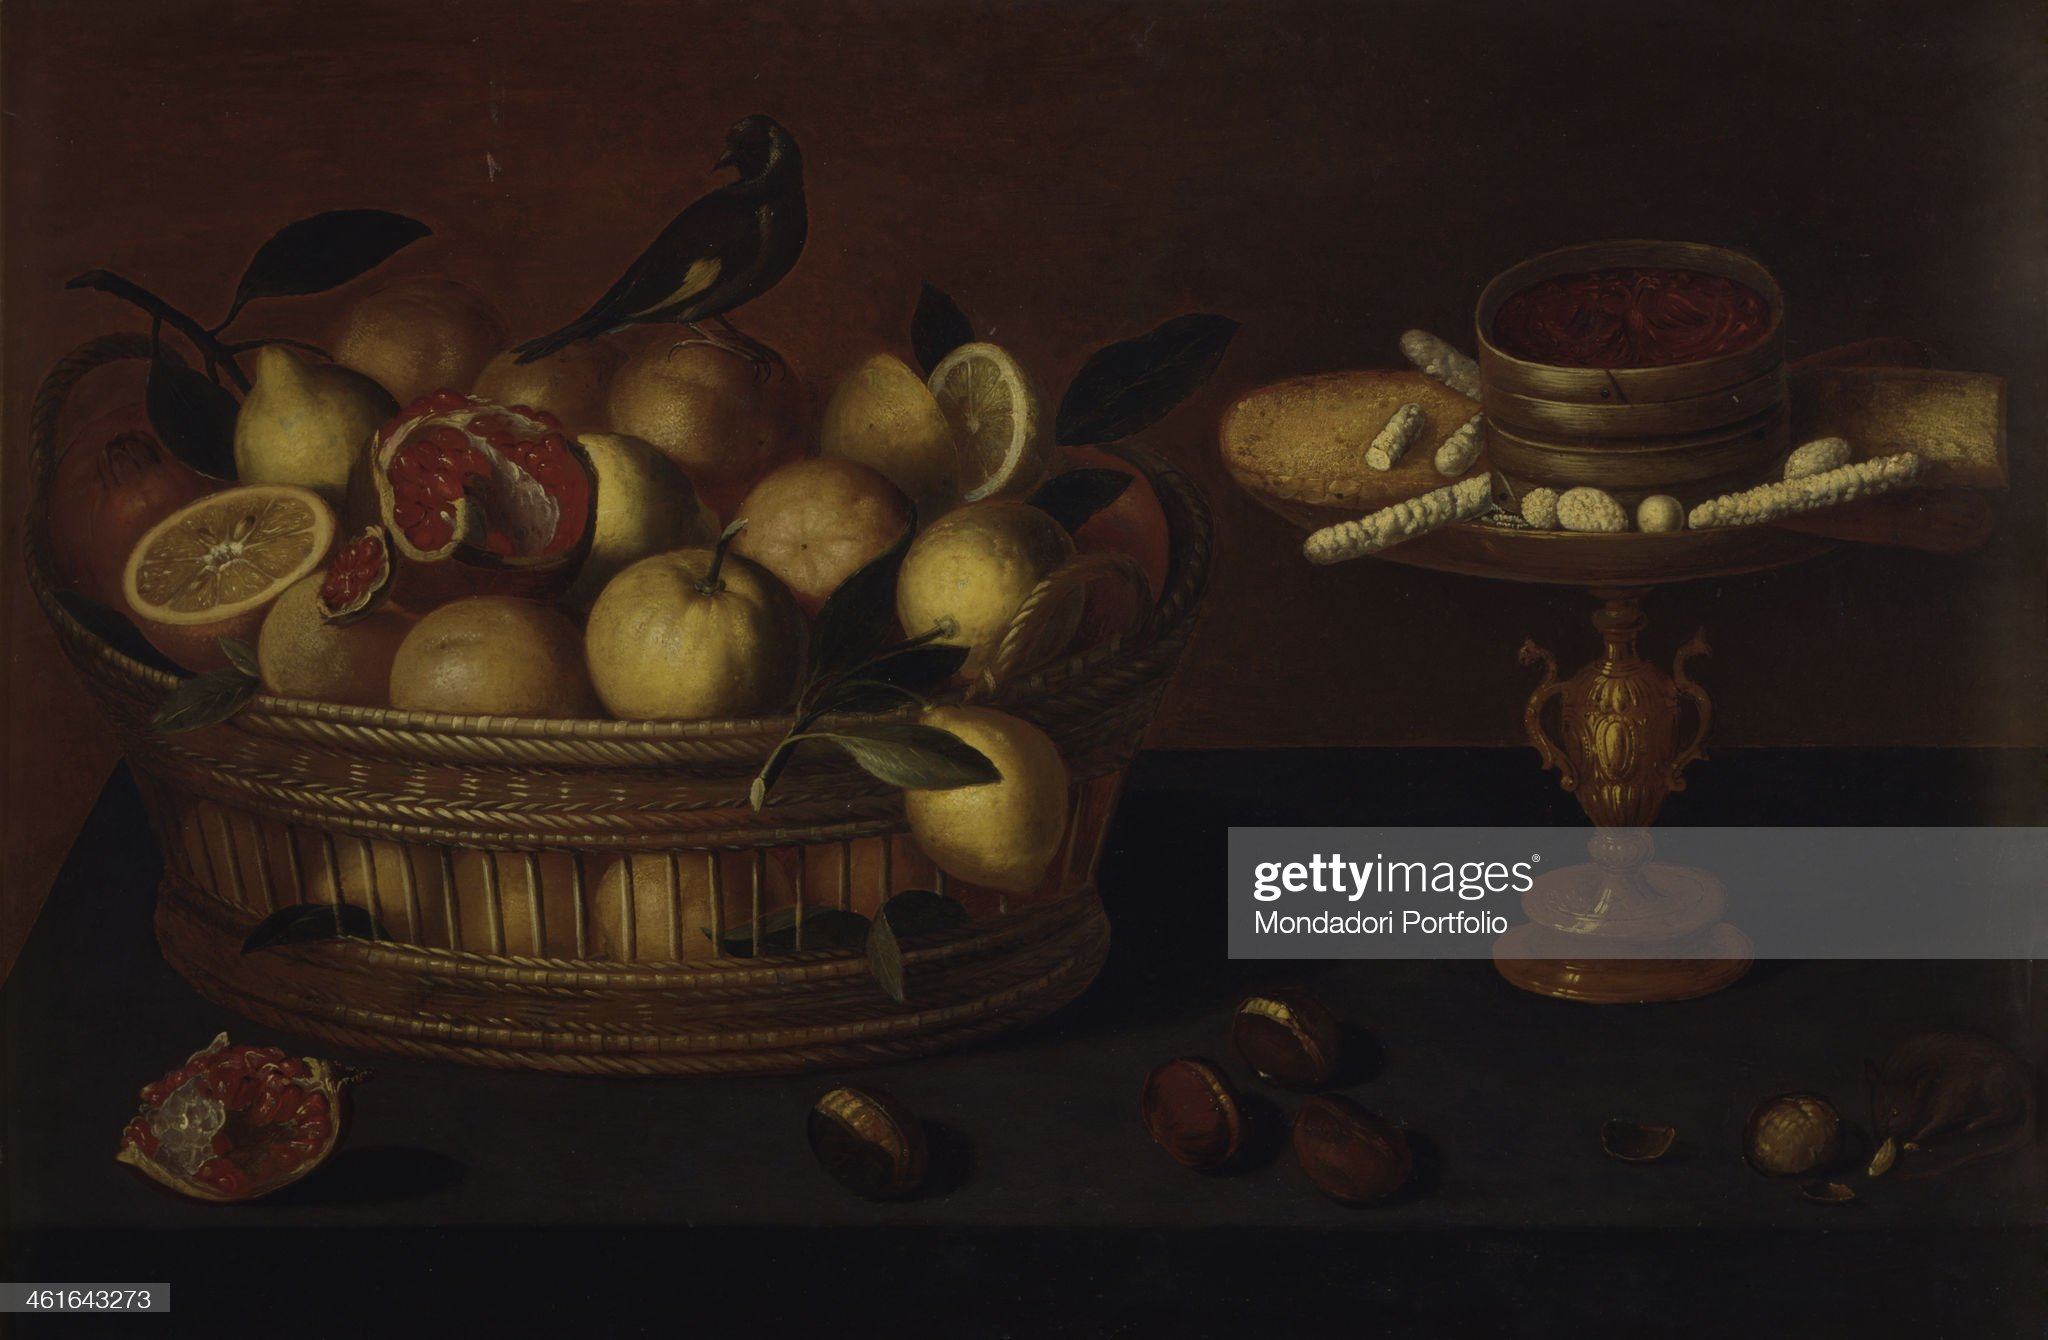 Basket with Fruits and Little Lift with Sweets, by Francesco Codino, 1610 - 1620, 17th Century, oil on board : Foto di attualità